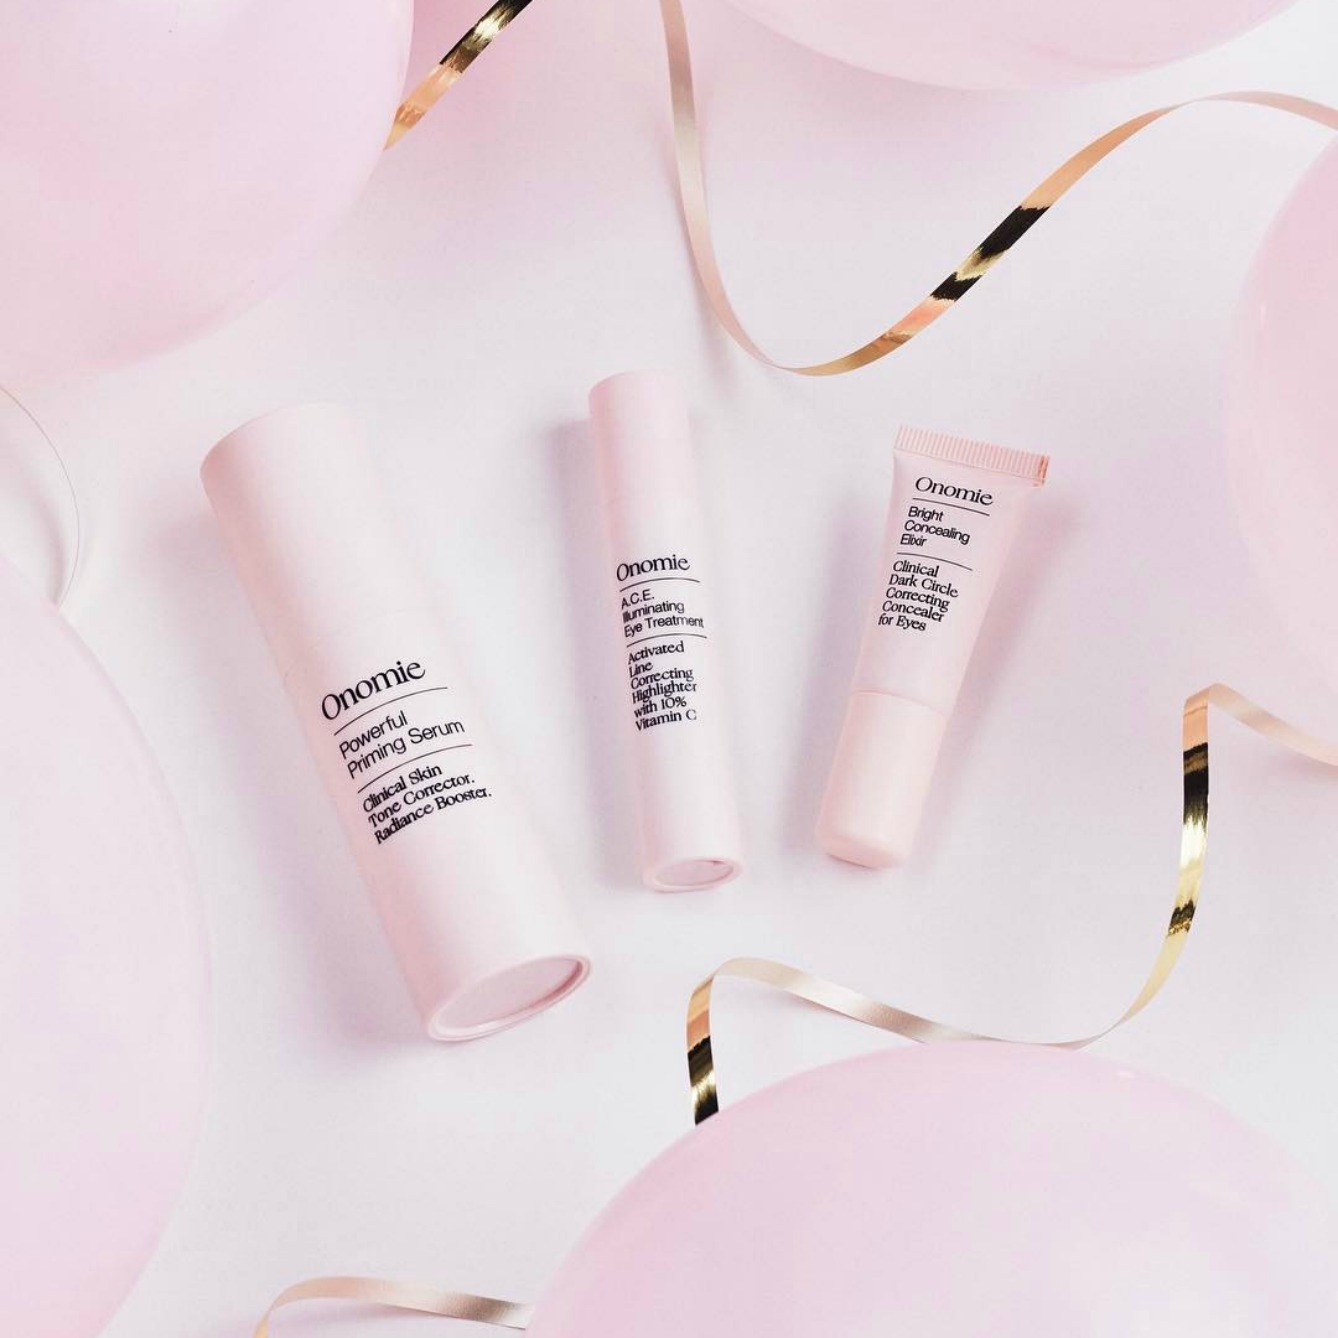 Onomie Beauty Is the Instagram Brand You Should Be Using